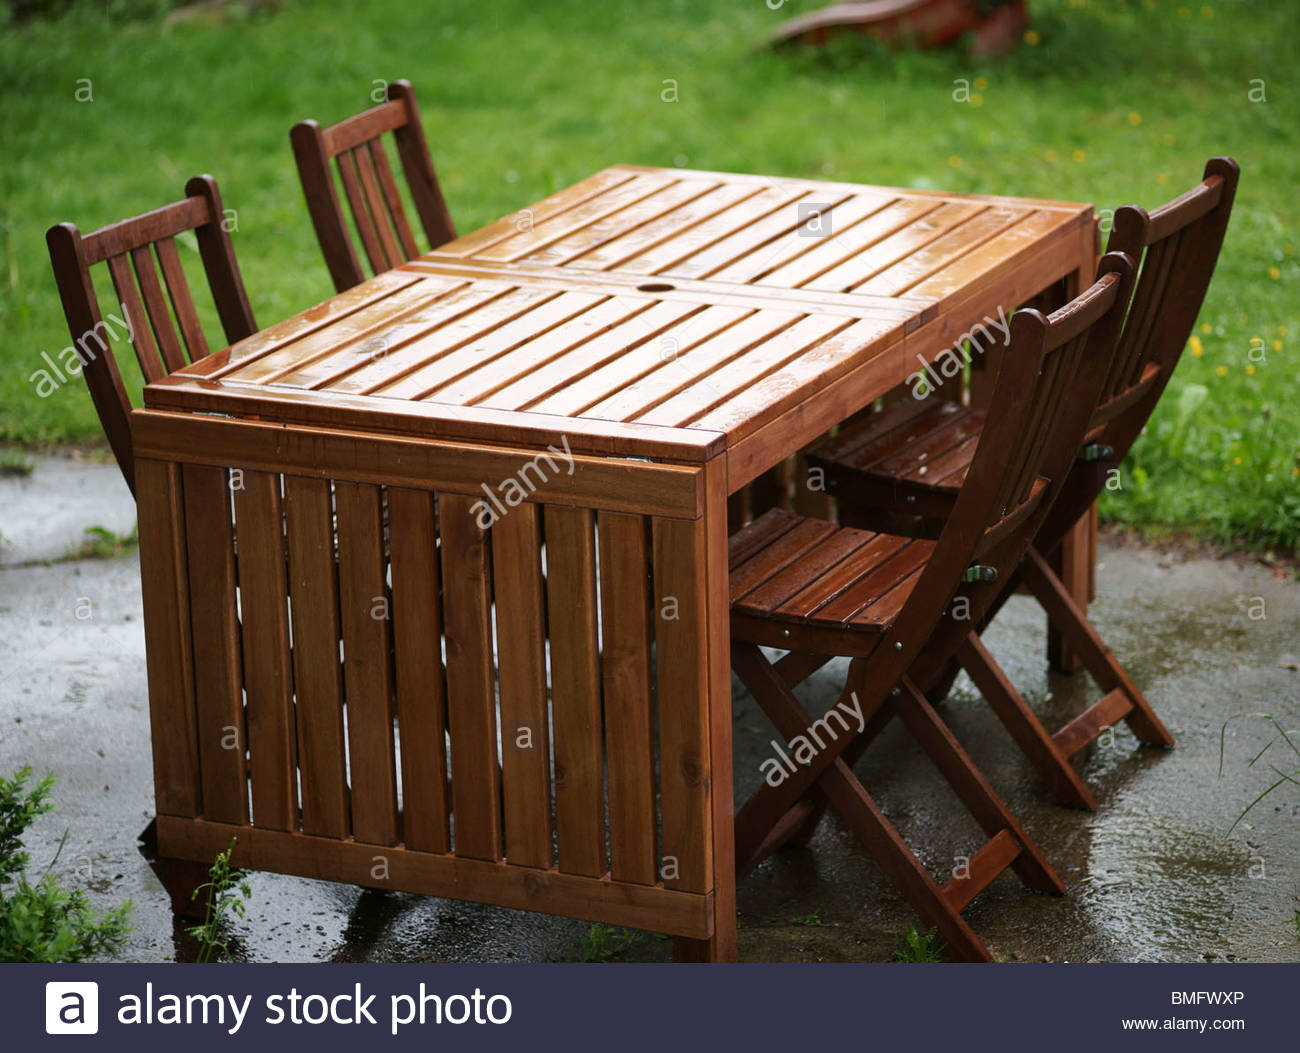 Patio Furniture Table And Chairs Garden Furniture Wooden Table And Chairs Stock Photo